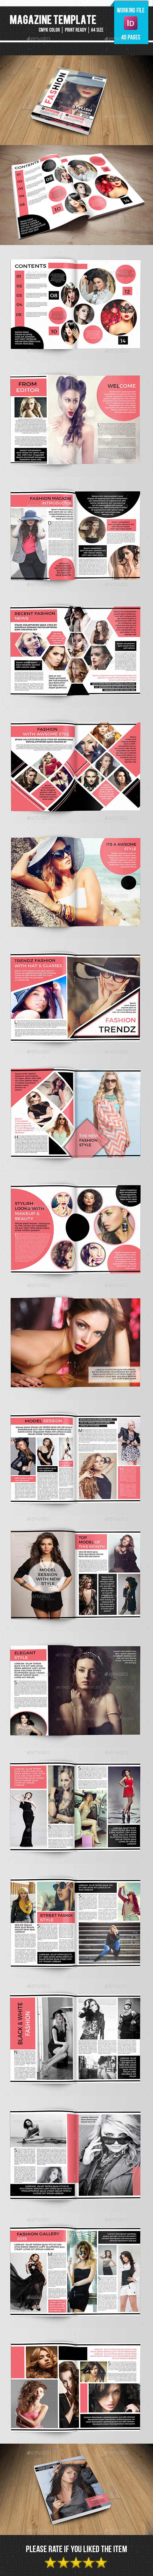 Fashion Magazine Template-v13 - Magazines Print Templates